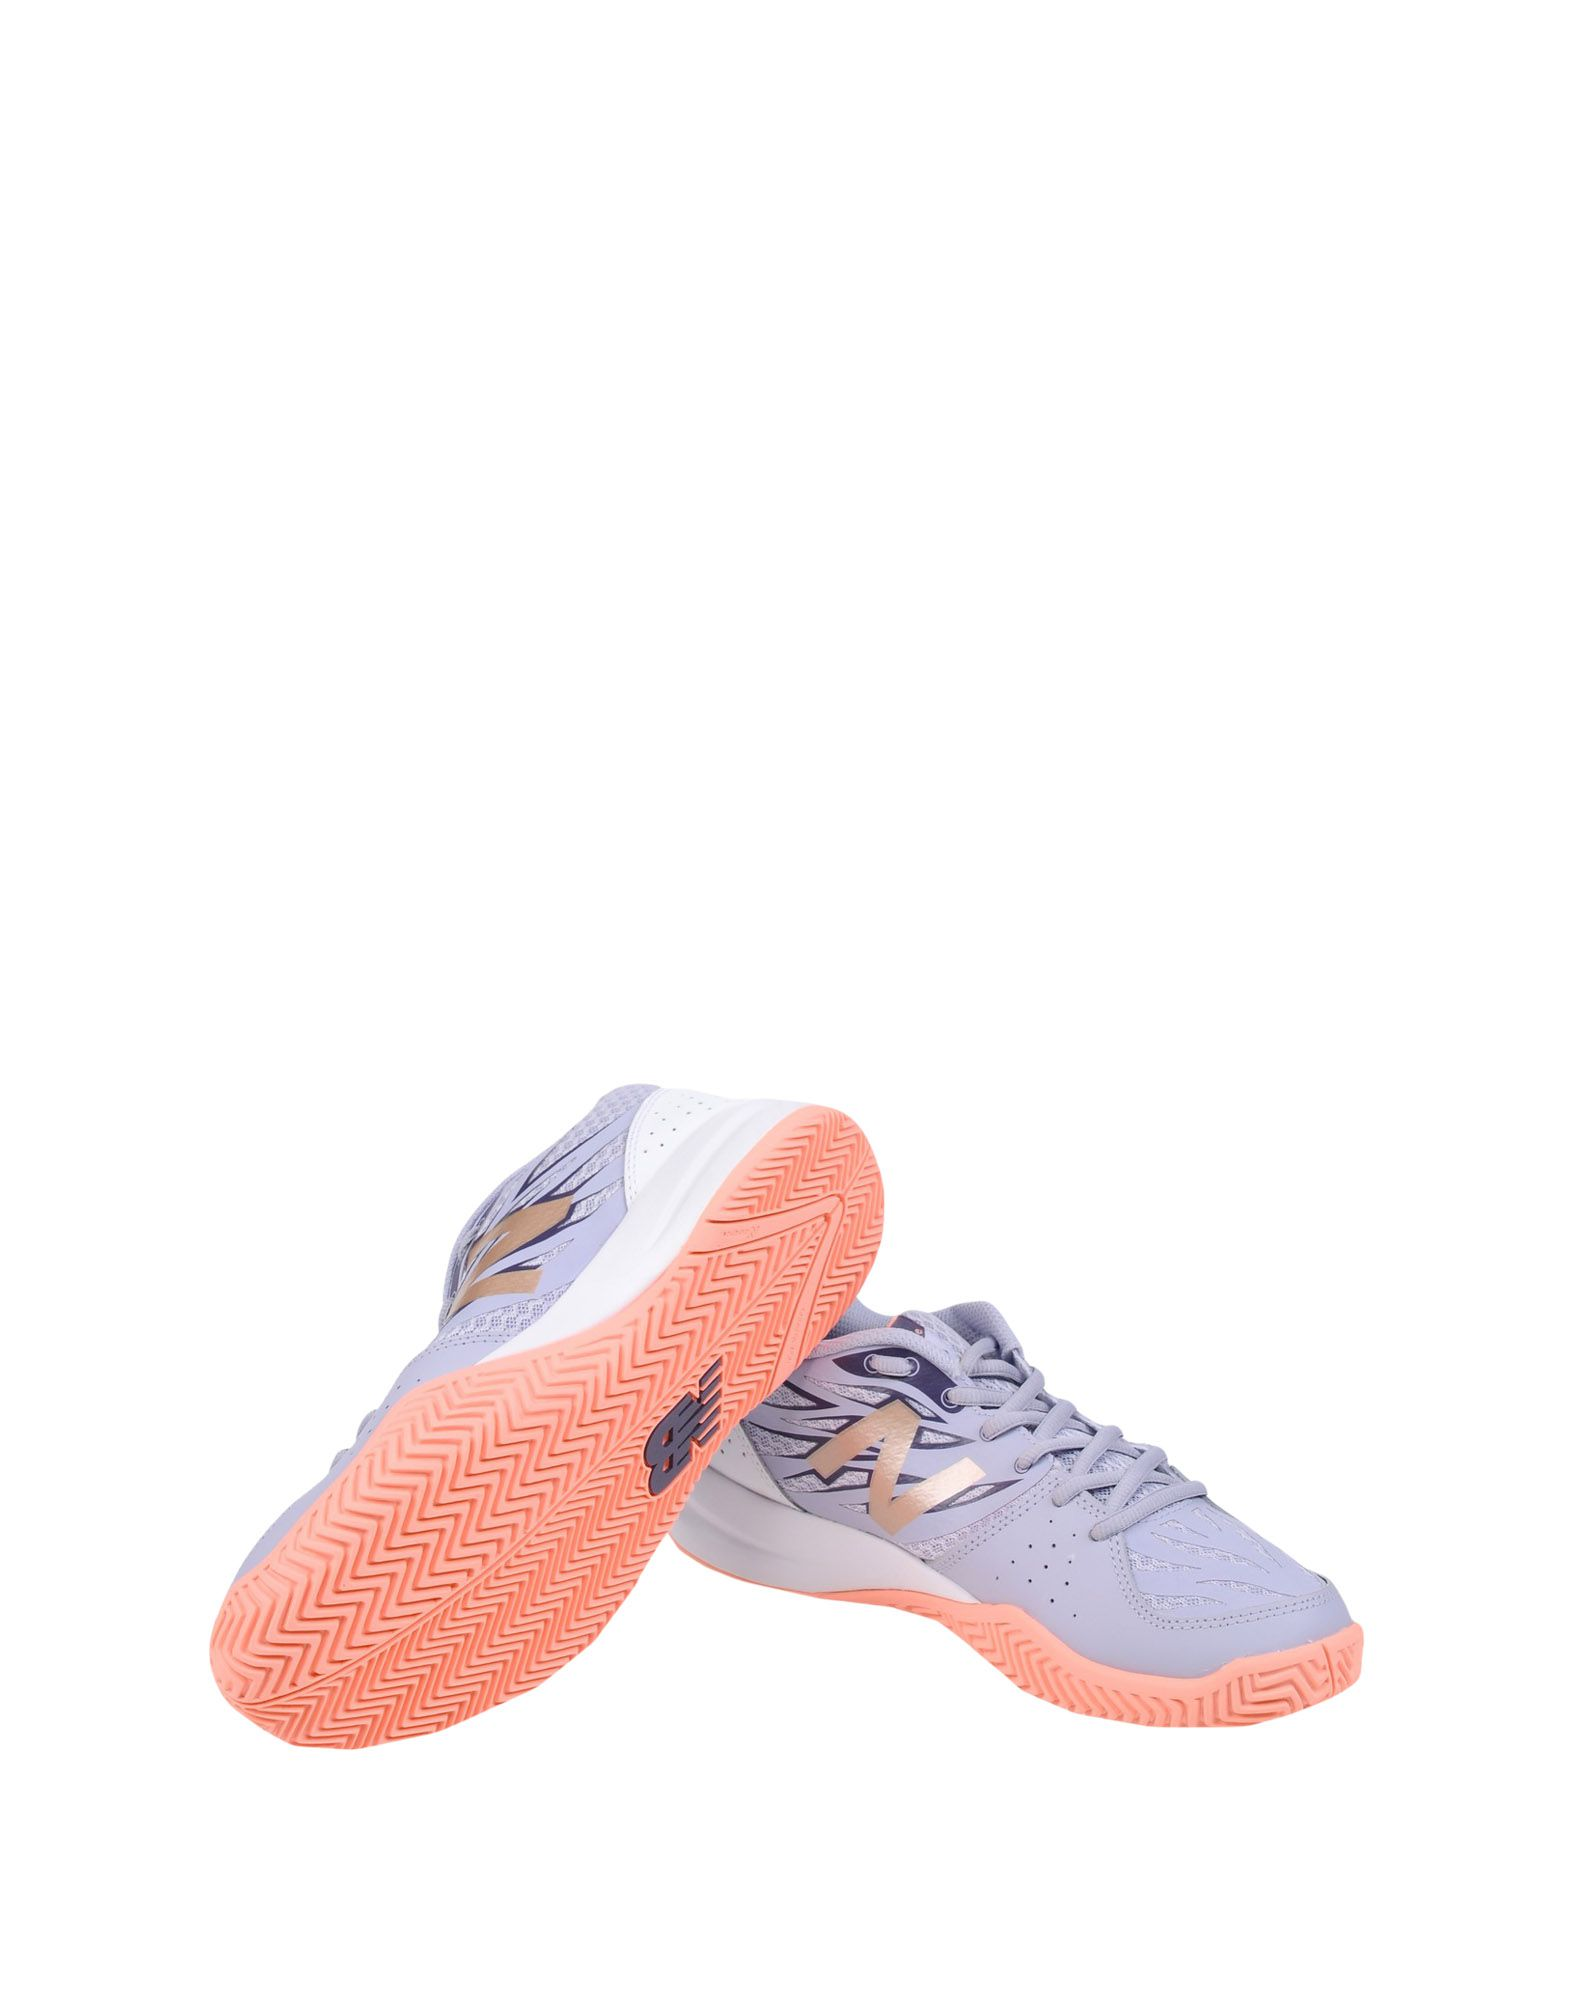 Sneakers New Balance 786V2 Tennis Stability Performance - Femme - Sneakers New Balance sur